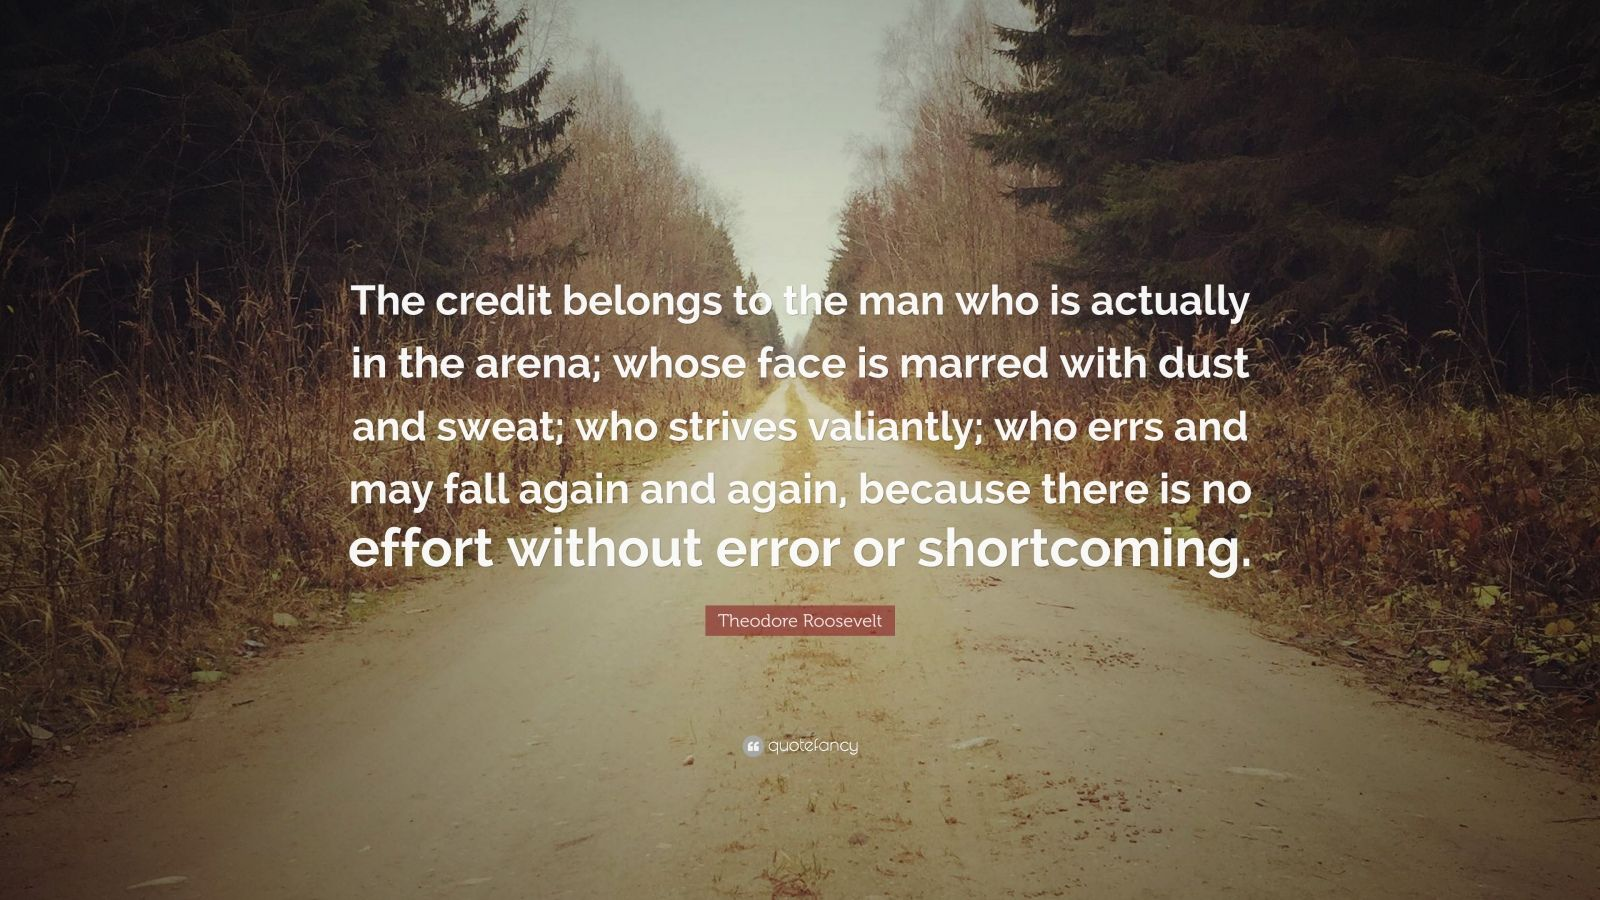 "Theodore Roosevelt Quote: ""The credit belongs to the man who is actually in the arena; whose face is marred with dust and sweat; who strives valiantly; who errs and may fall again and again, because there is no effort without error or shortcoming."""